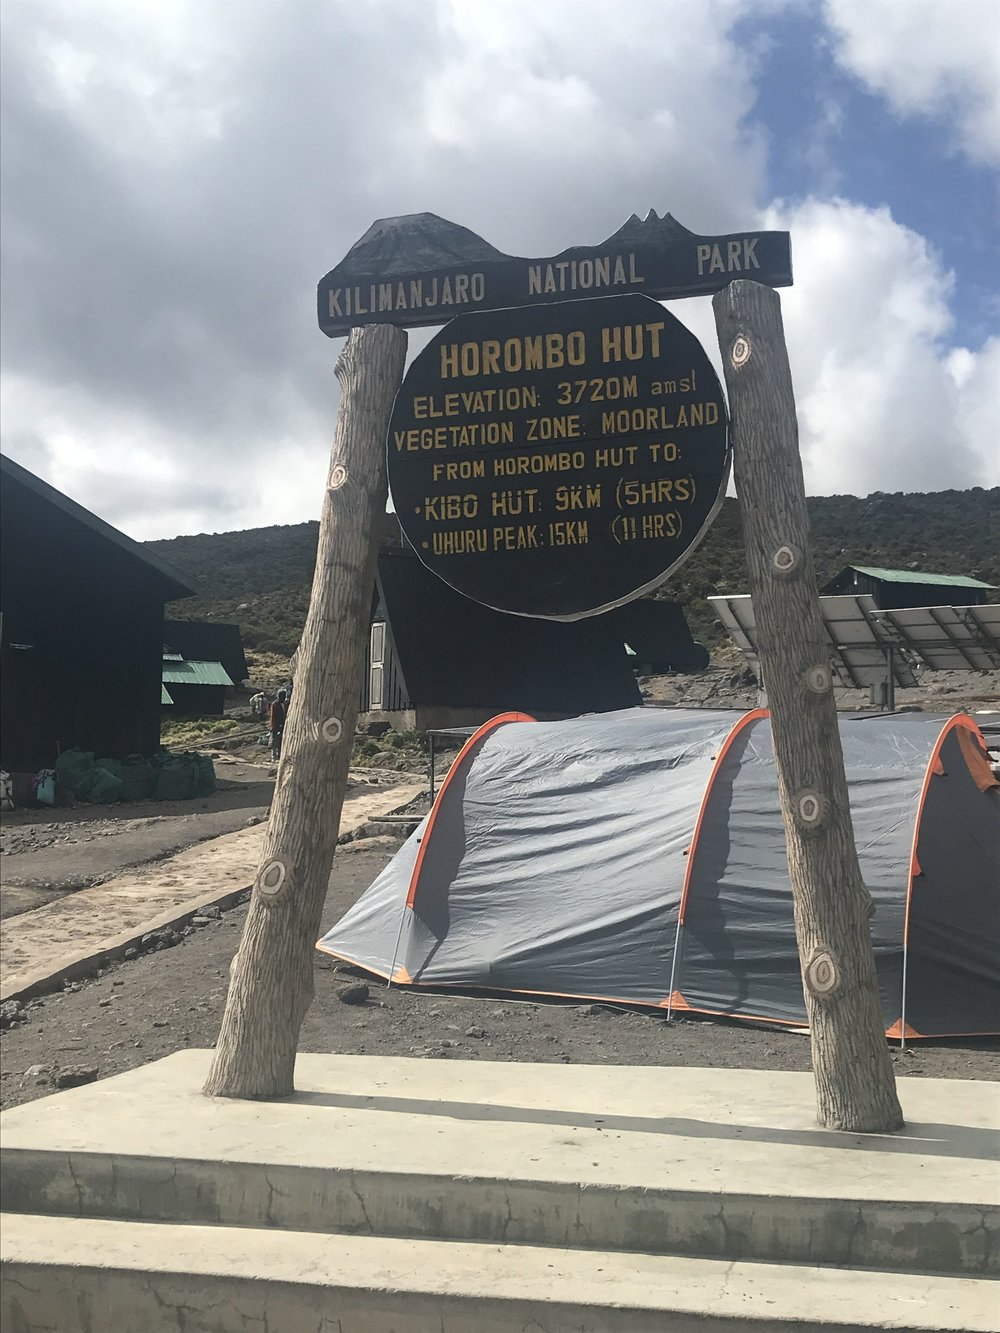 Horombo huts! Now at 14,000' above sea level.